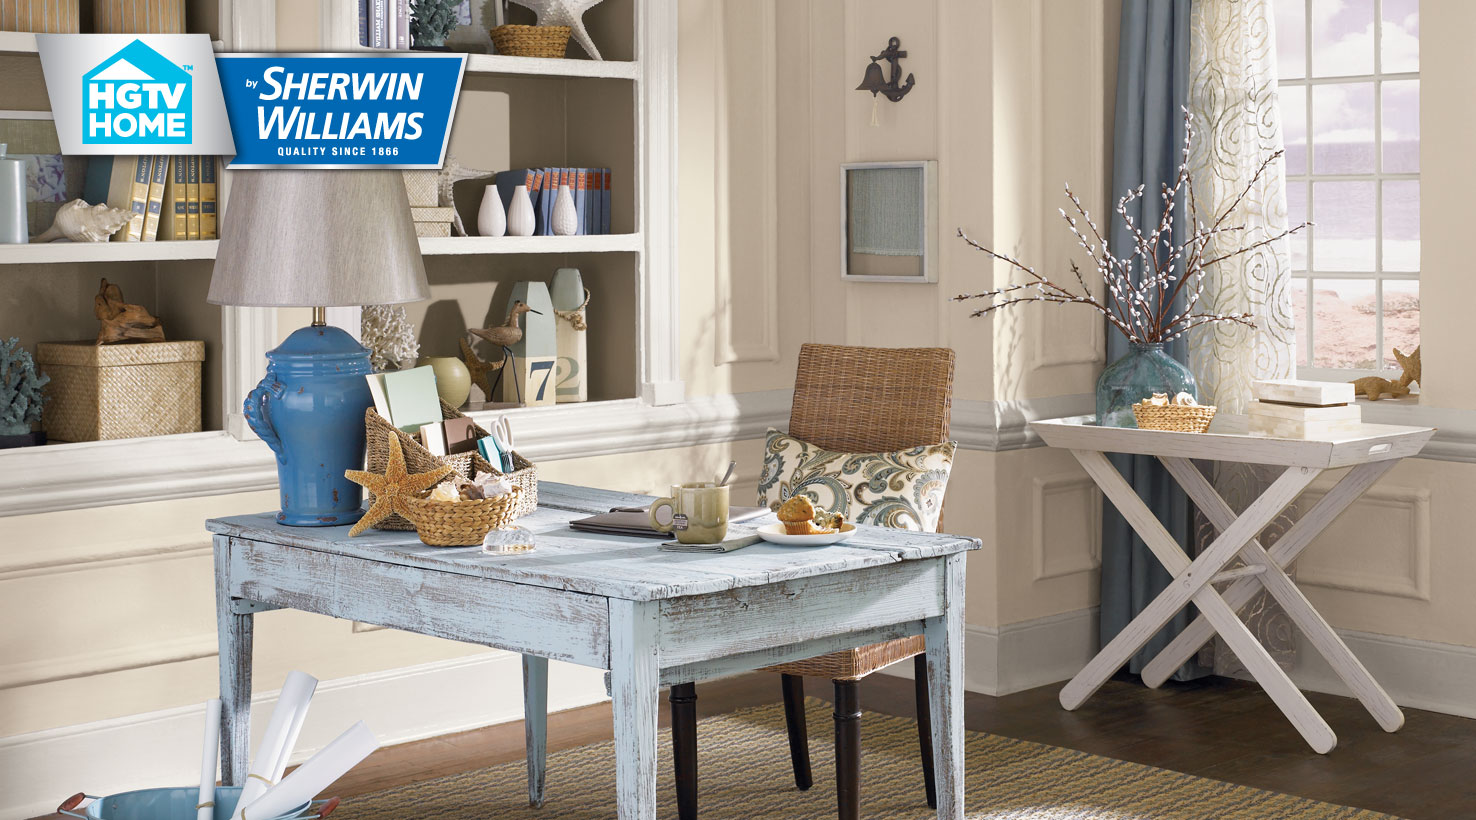 Coastal cool color palette hgtv home by sherwin williams for Hgtv beach house designs